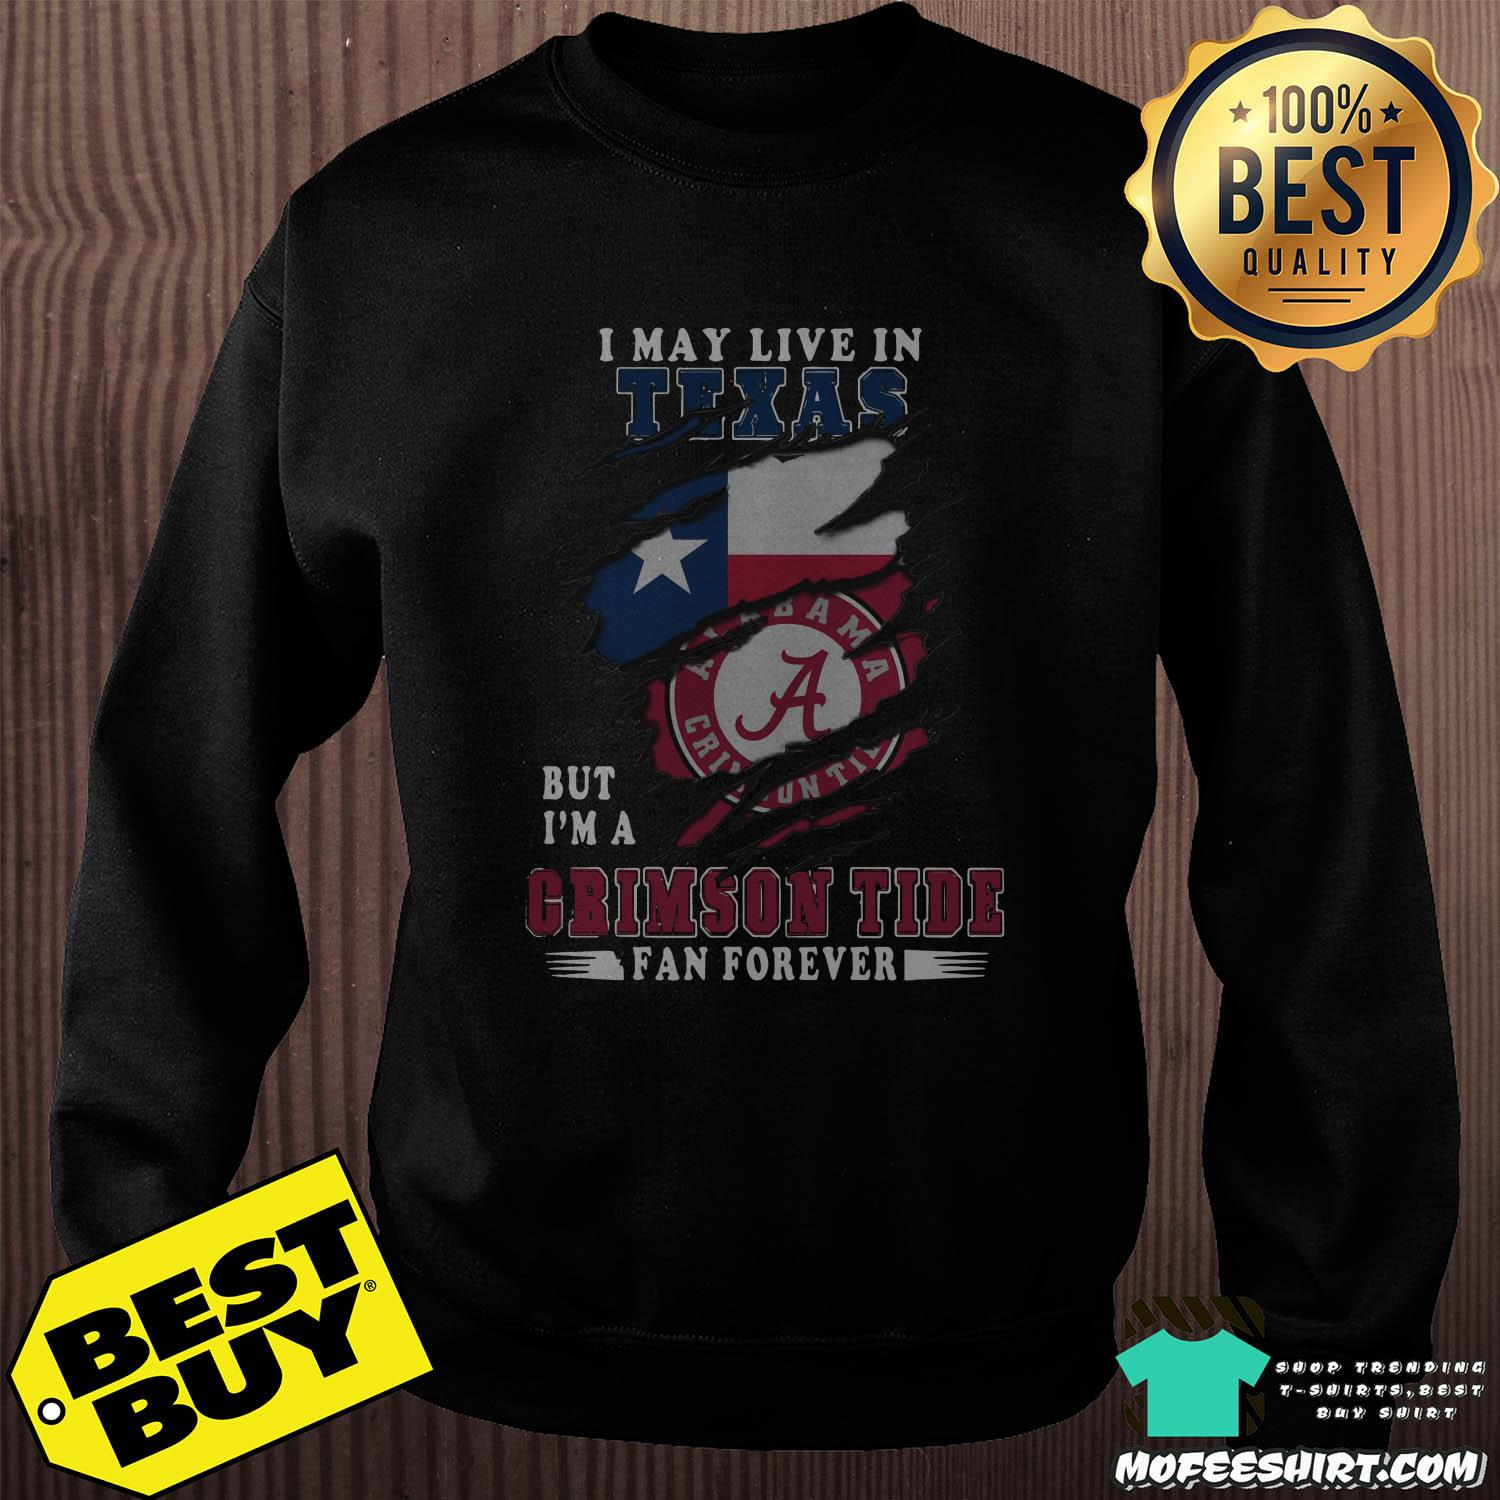 i may live in texas but im a crimson tide fan forever sweatshirt - I May Live In Texas But I'm A Crimson Tide Fan Forever Alabama Crimson Shirt